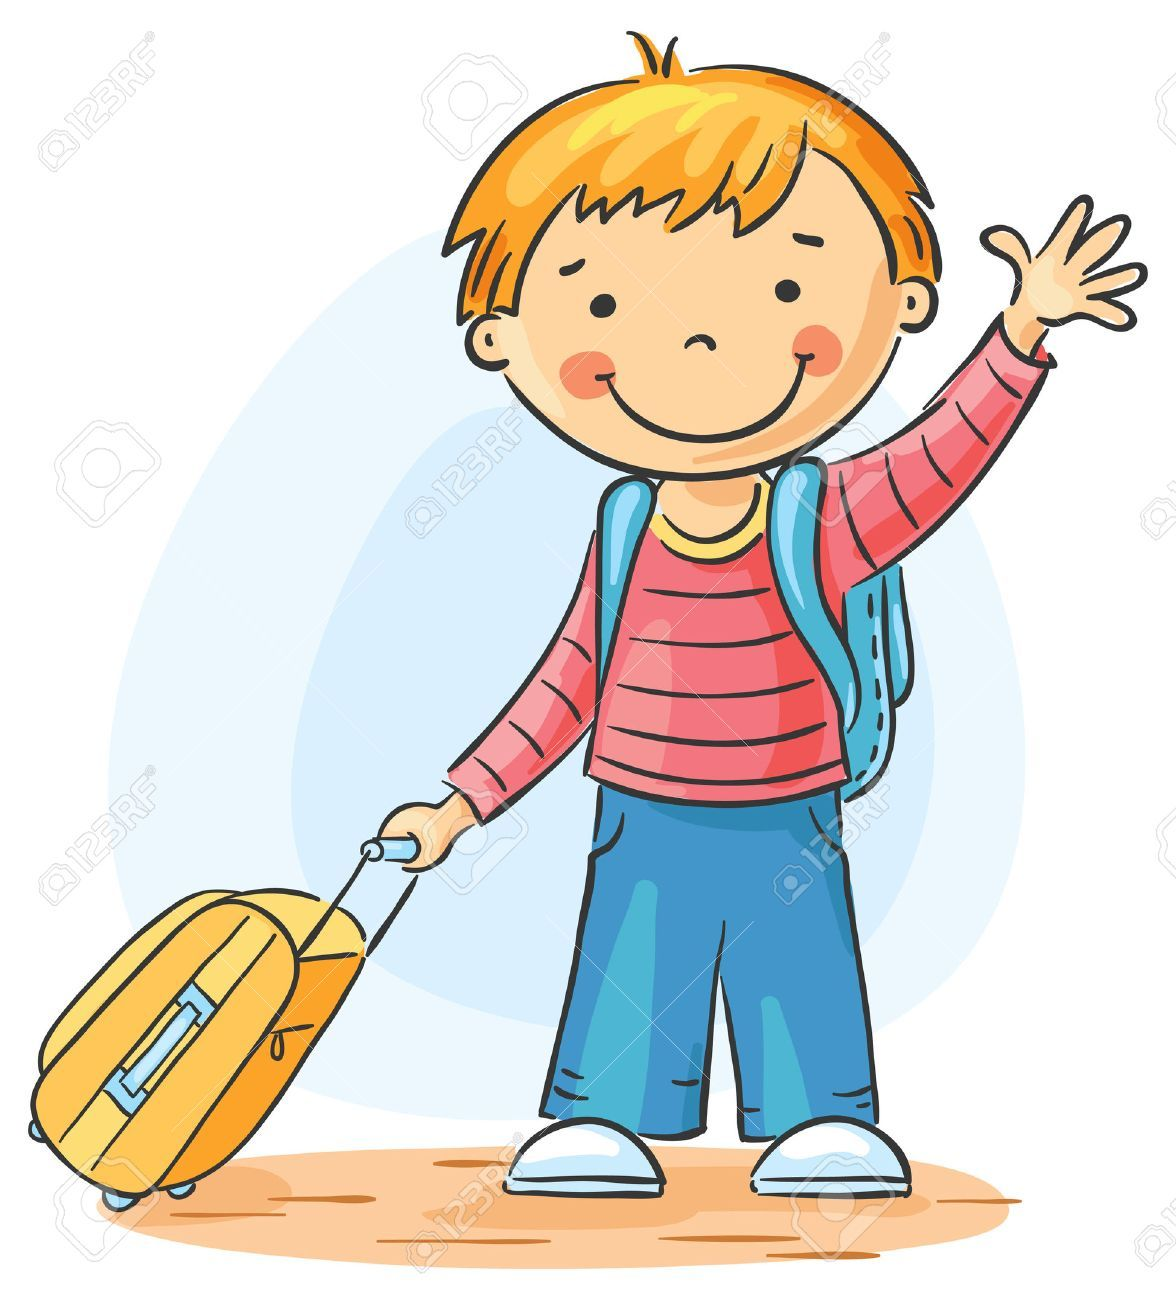 Clipart child waving bye banner library Kids waving goodbye clipart » Clipart Portal banner library